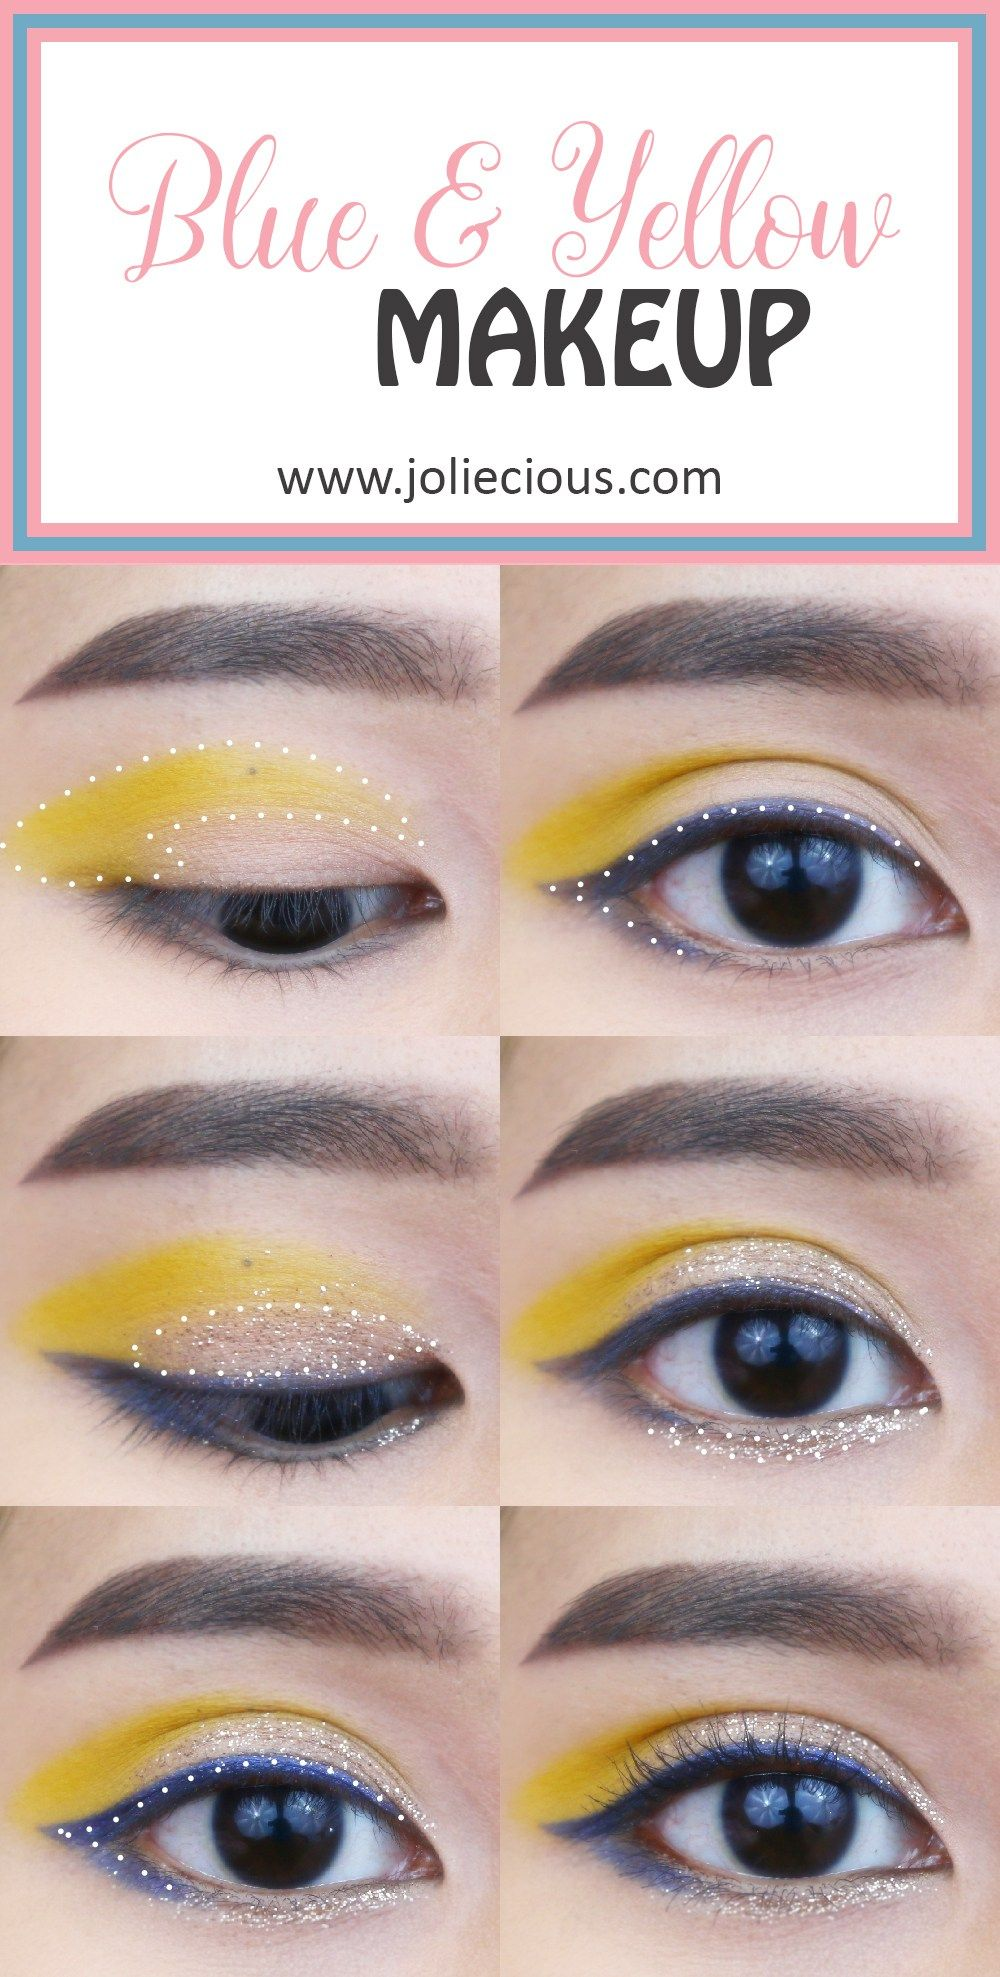 5d9e9406f78 Bold color makeup tutorial | Blue and yellow makeup | Easy makeup tutorial  for beginner | BH Cosmetics Take Me Back to Brazil palette #makeuptutorials  ...